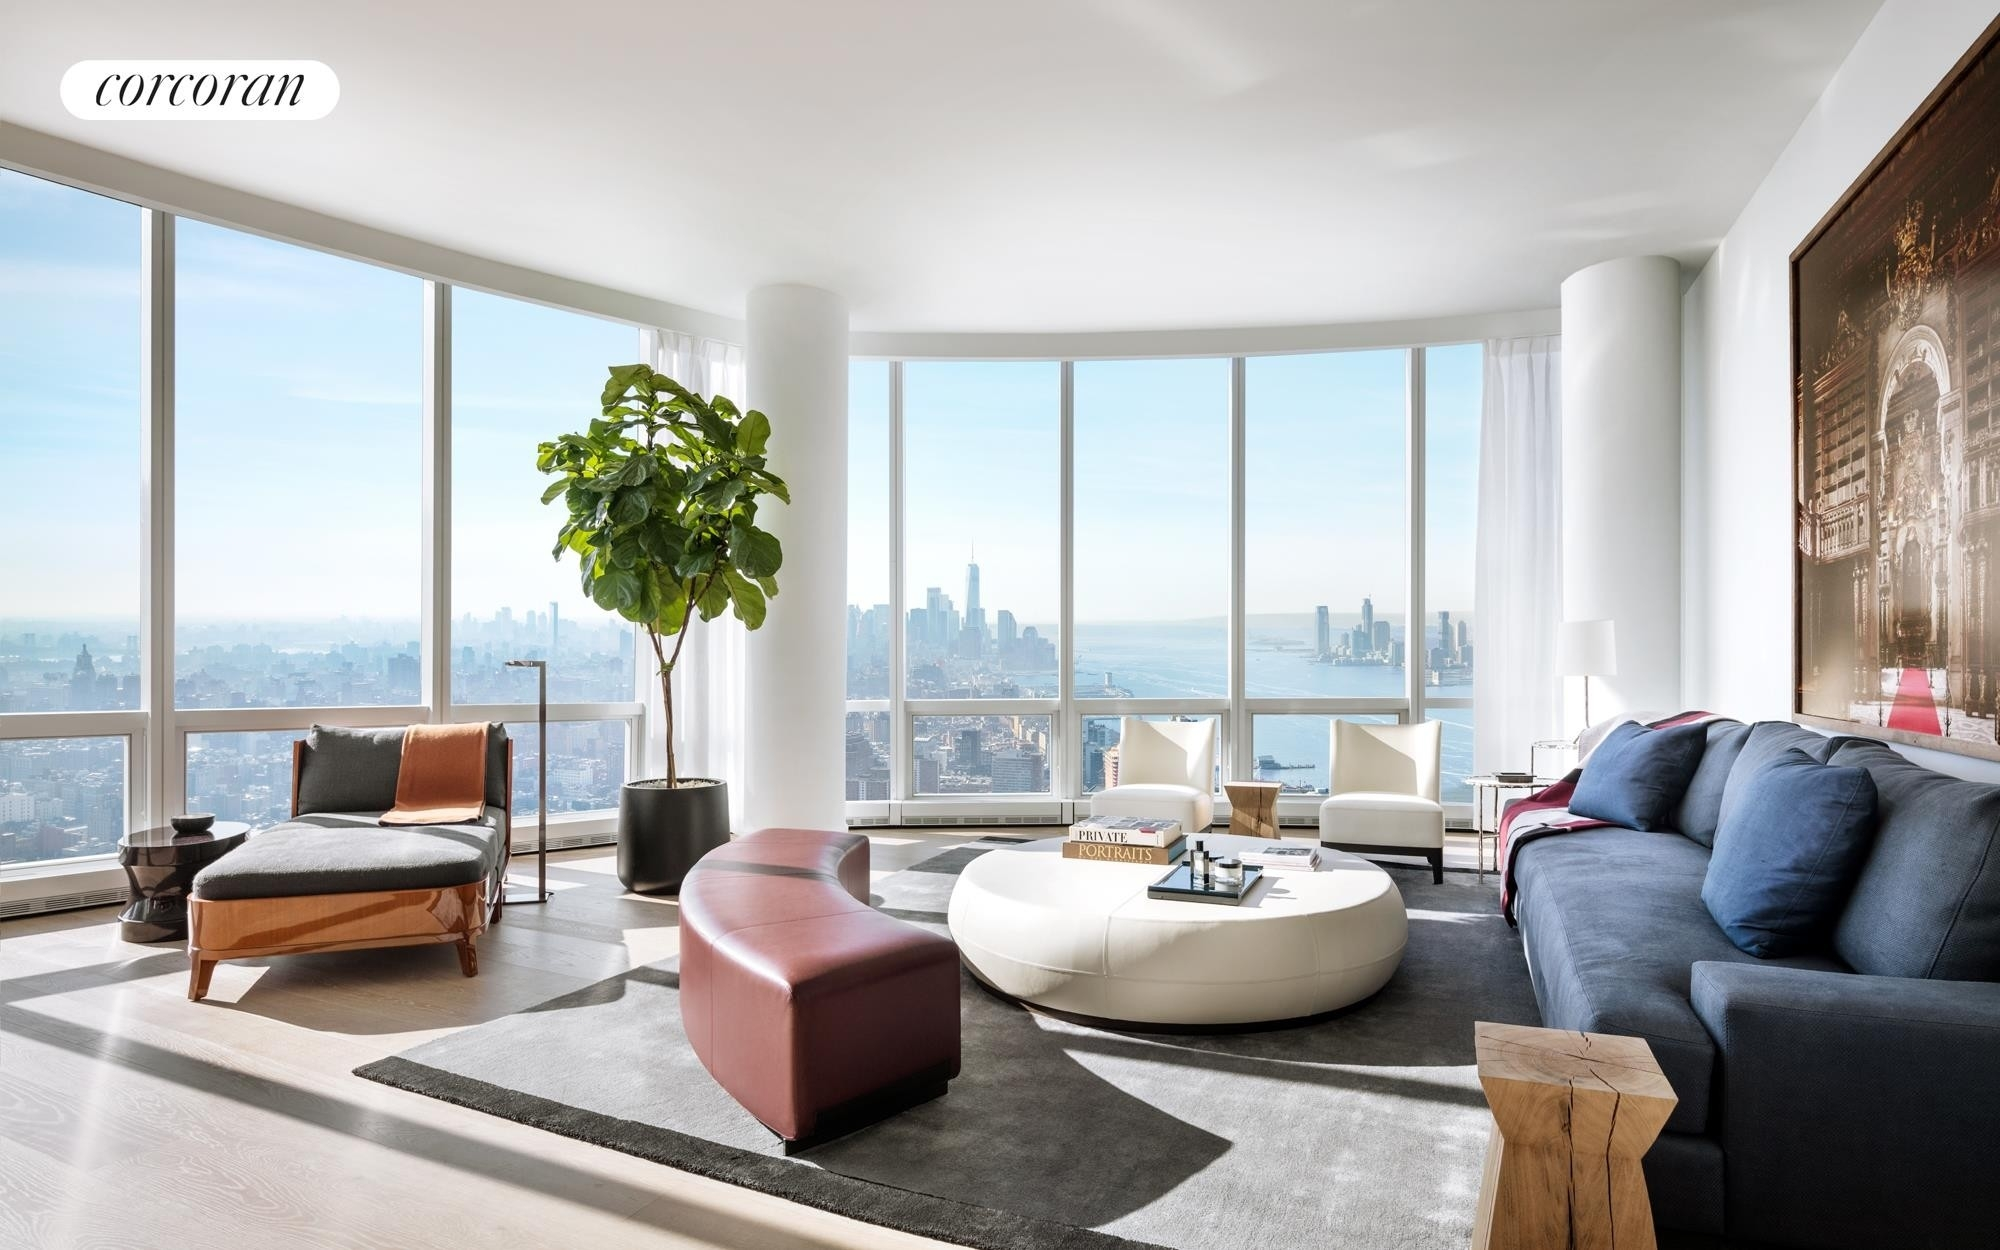 2. Condominiums for Sale at 15 Hudson Yards, 75B Hudson Yards, New York, NY 10001